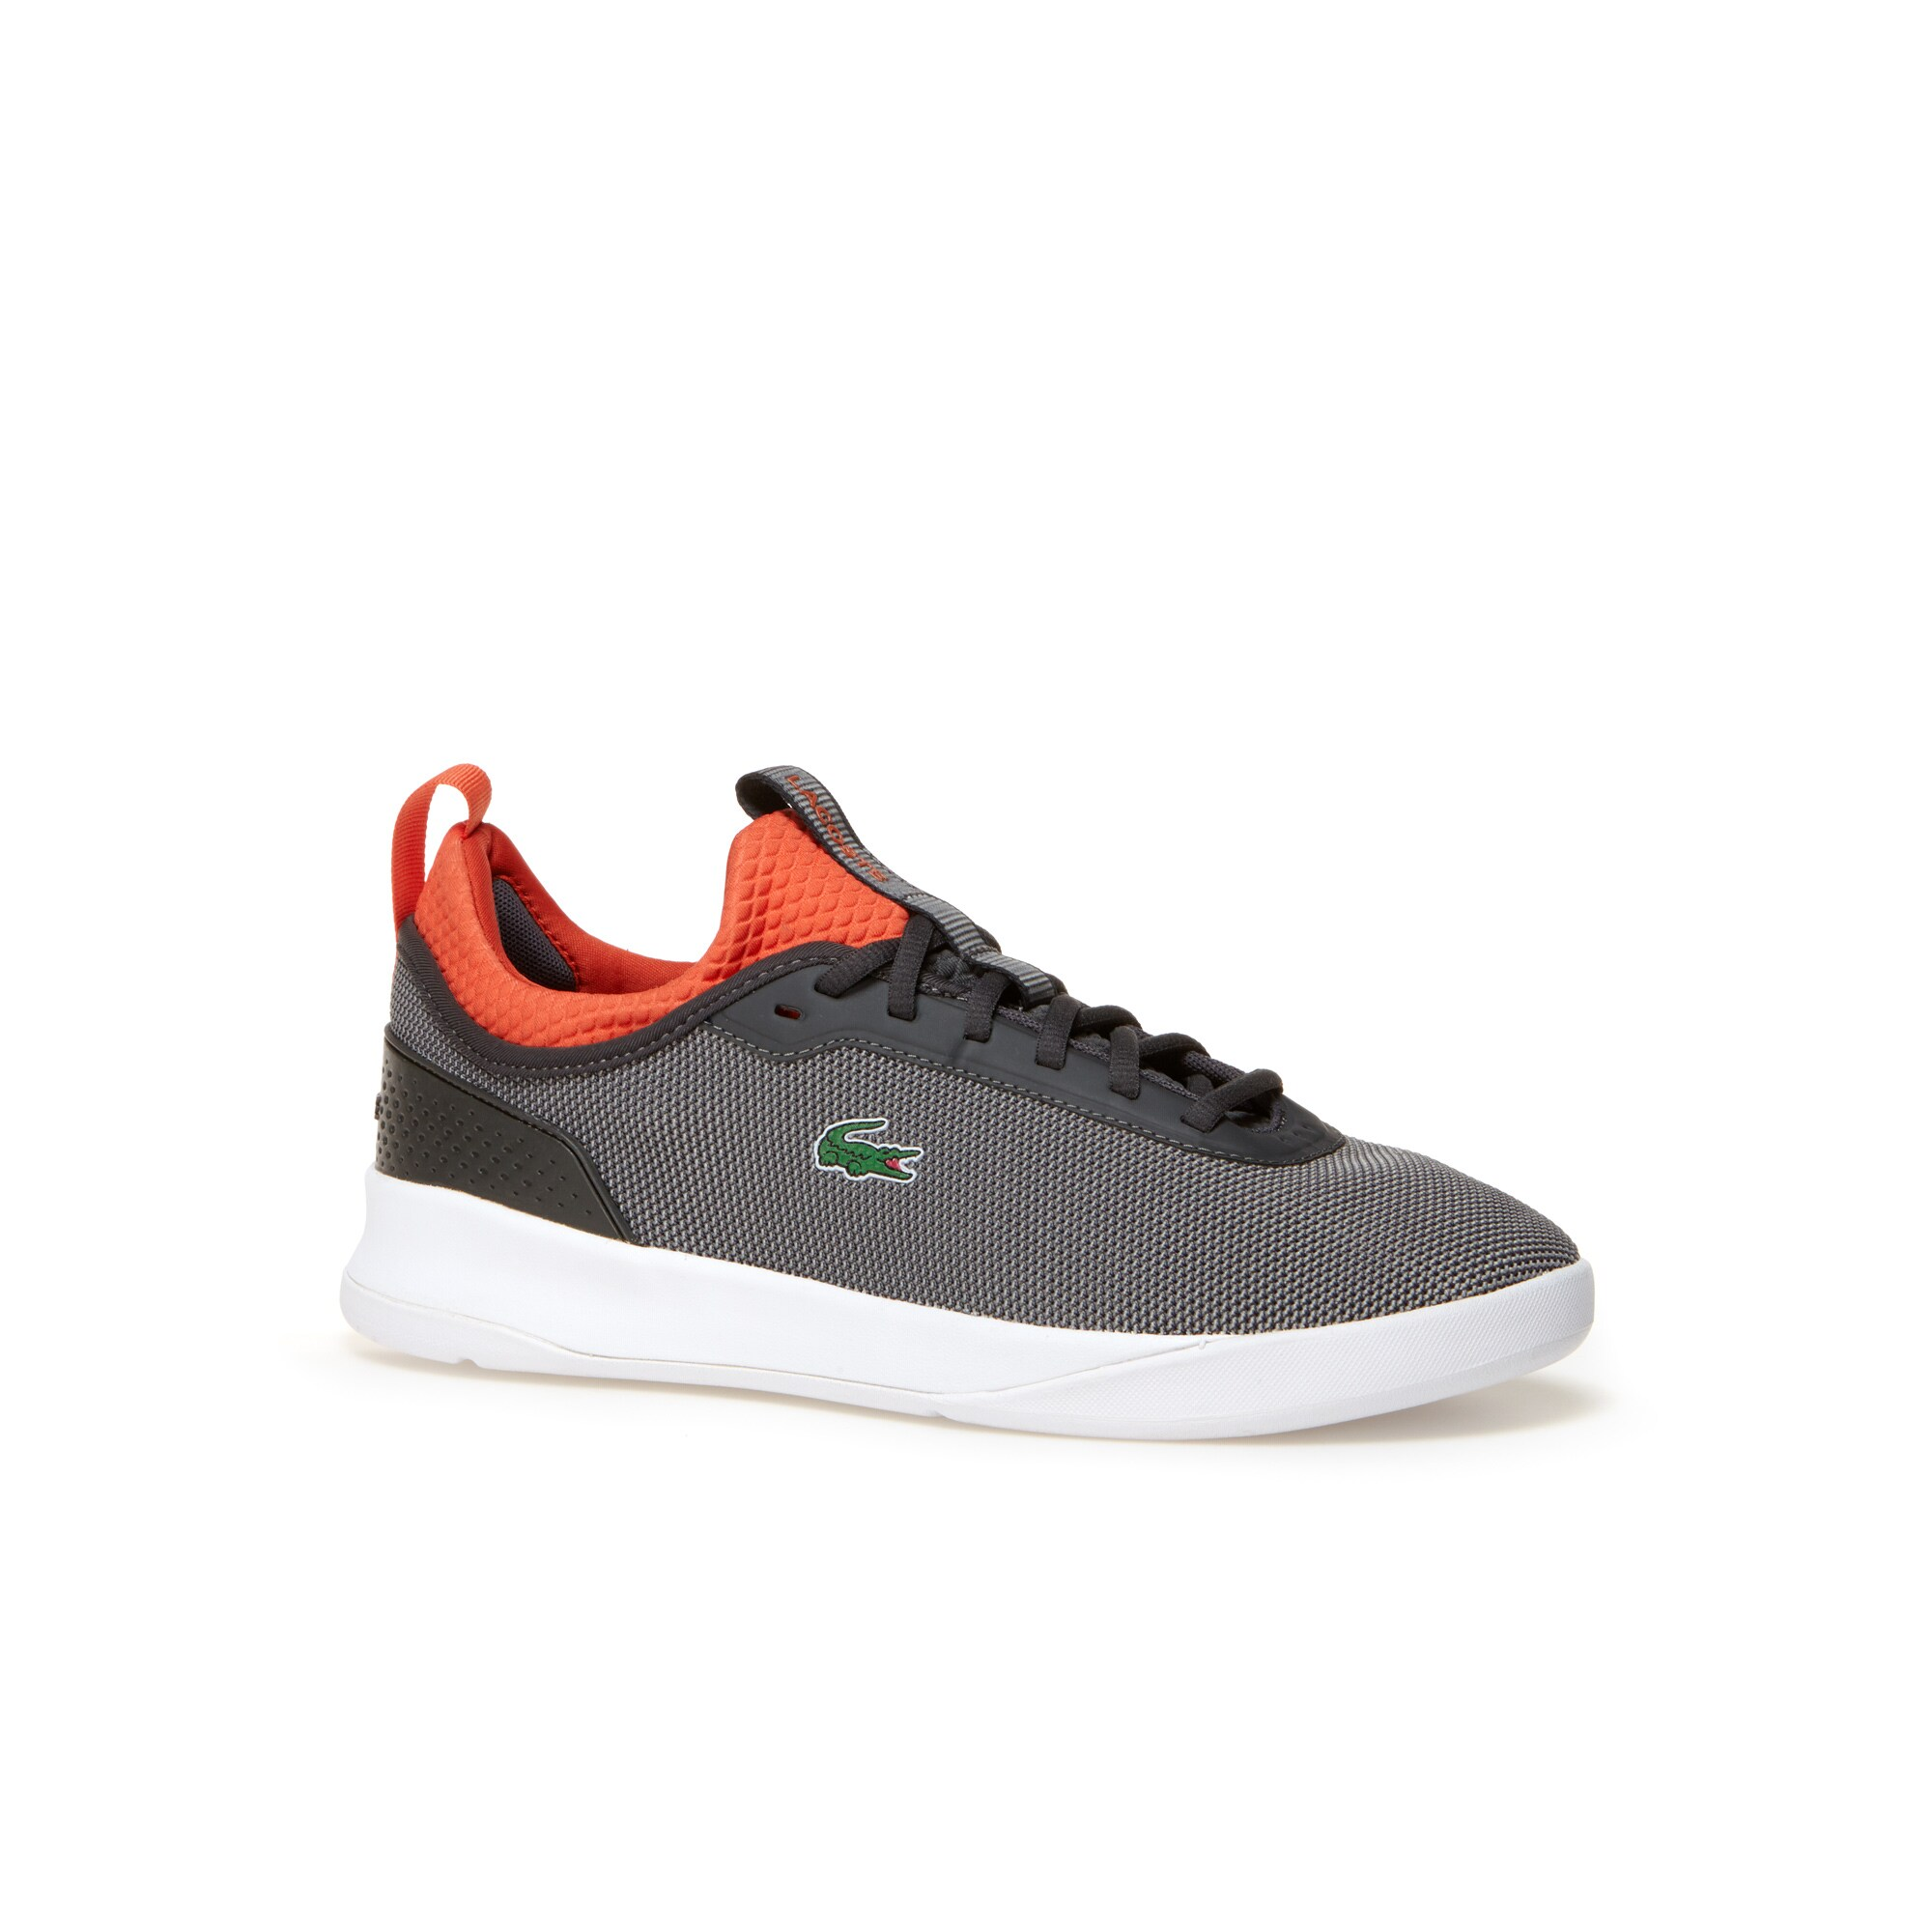 Men's LT Spirit 2.0 Textile Trainers